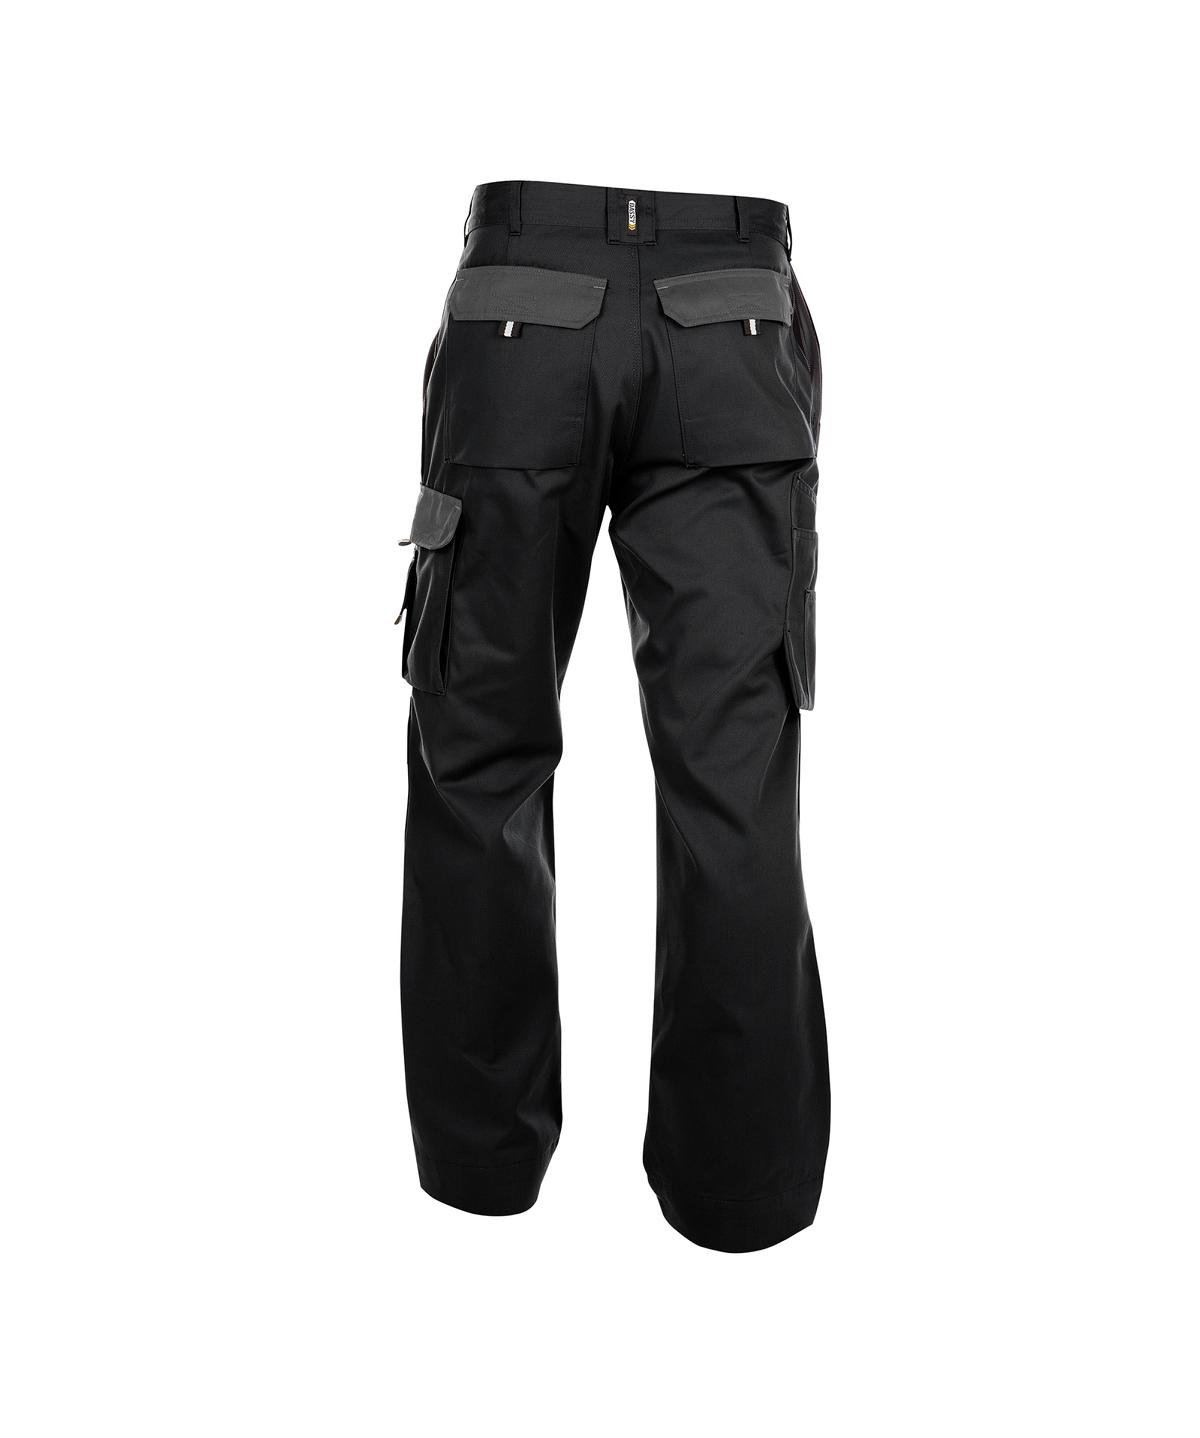 (42 -)DASSY TROUSER BOSTON PESCO64 (300 gr) BLACK/GREY MINUS